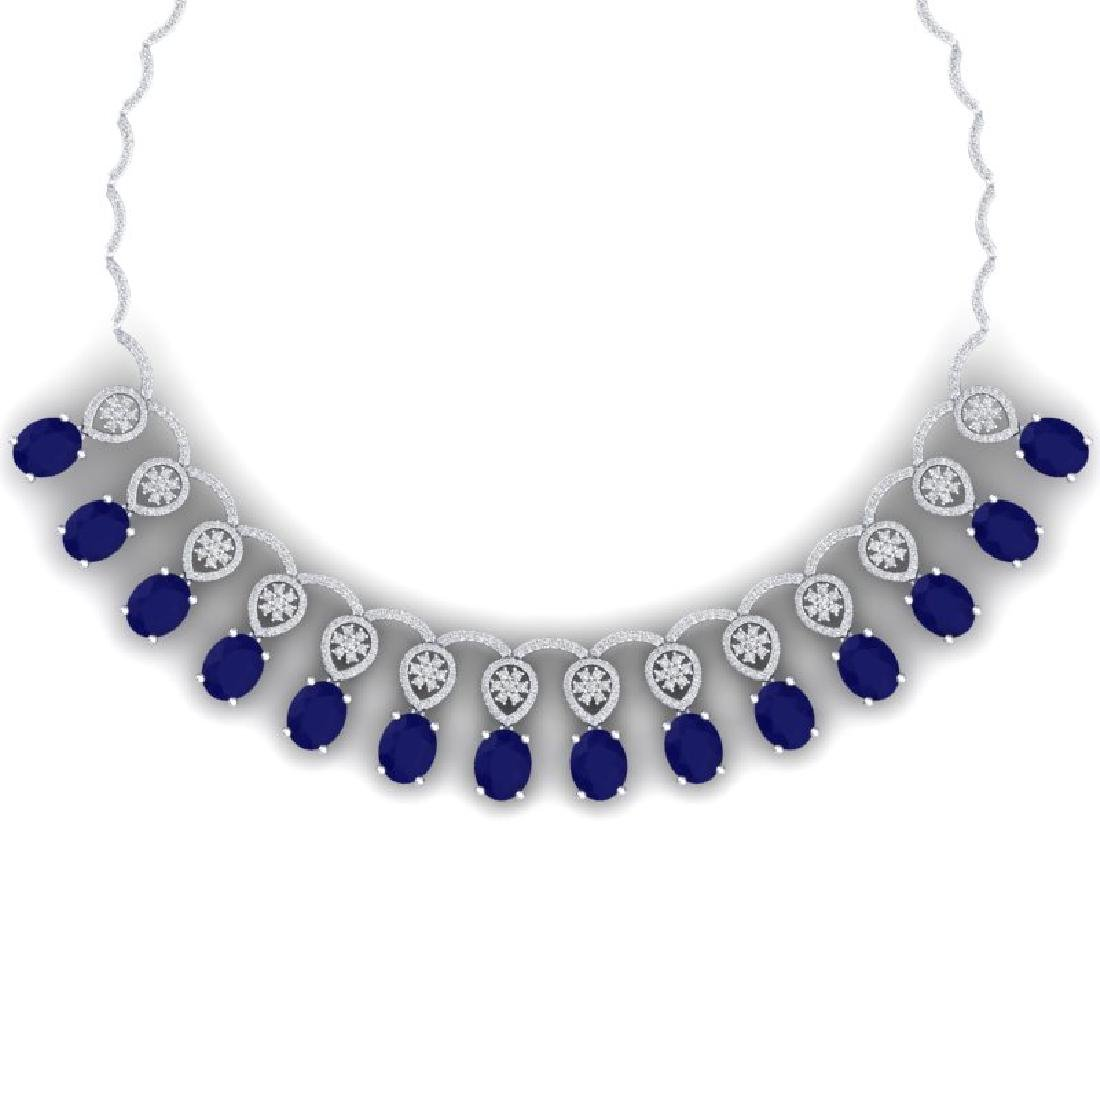 54.05 CTW Royalty Sapphire & VS Diamond Necklace 18K